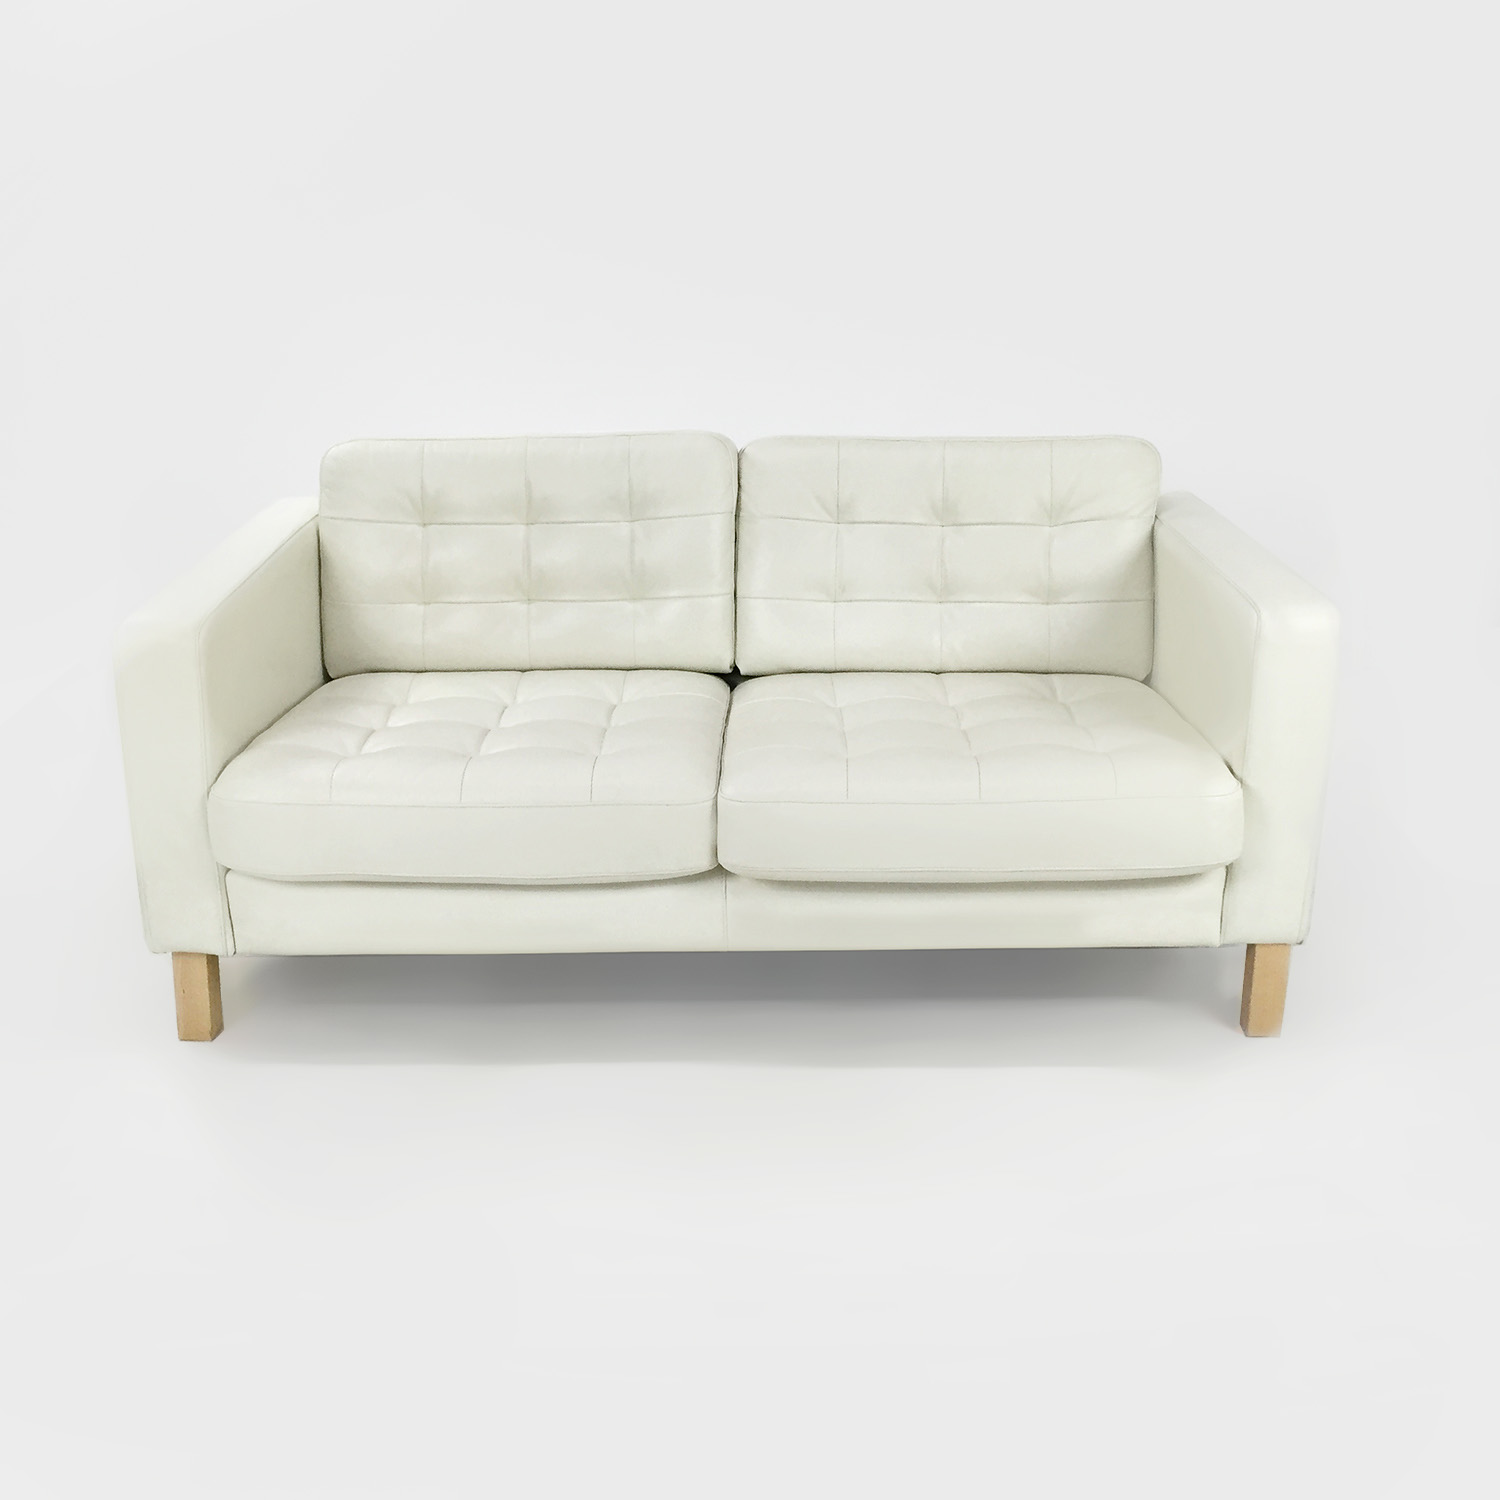 White Leather Couch 50 Off Ikea White Leather Couch Sofas